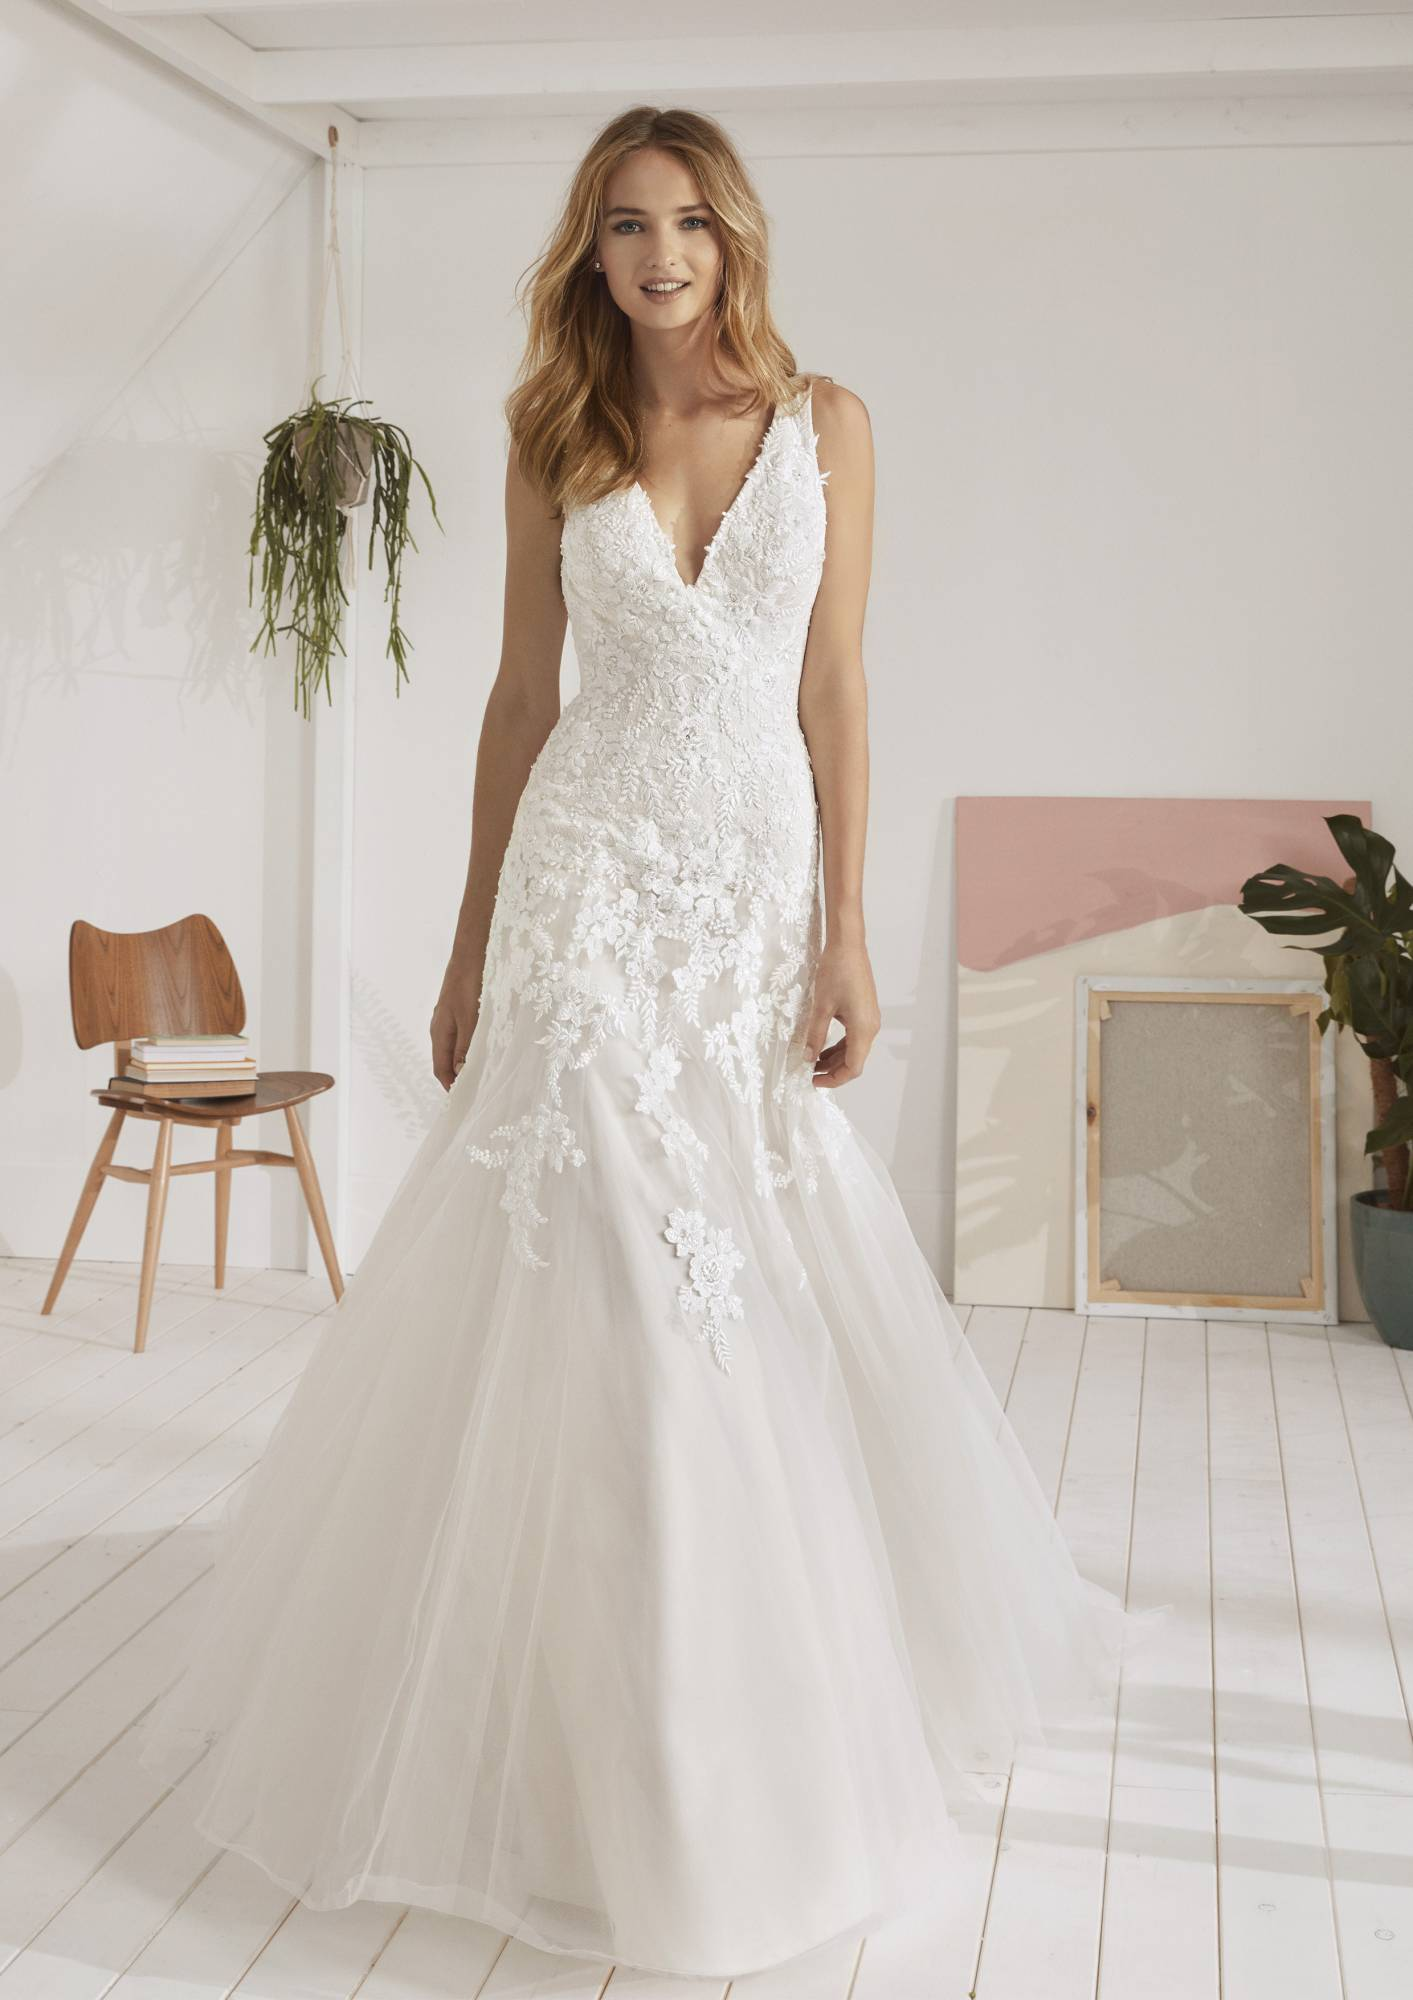 robe de mariée Oviedo white one 2019, fashion group Pronovias, robe de mariée  princesse